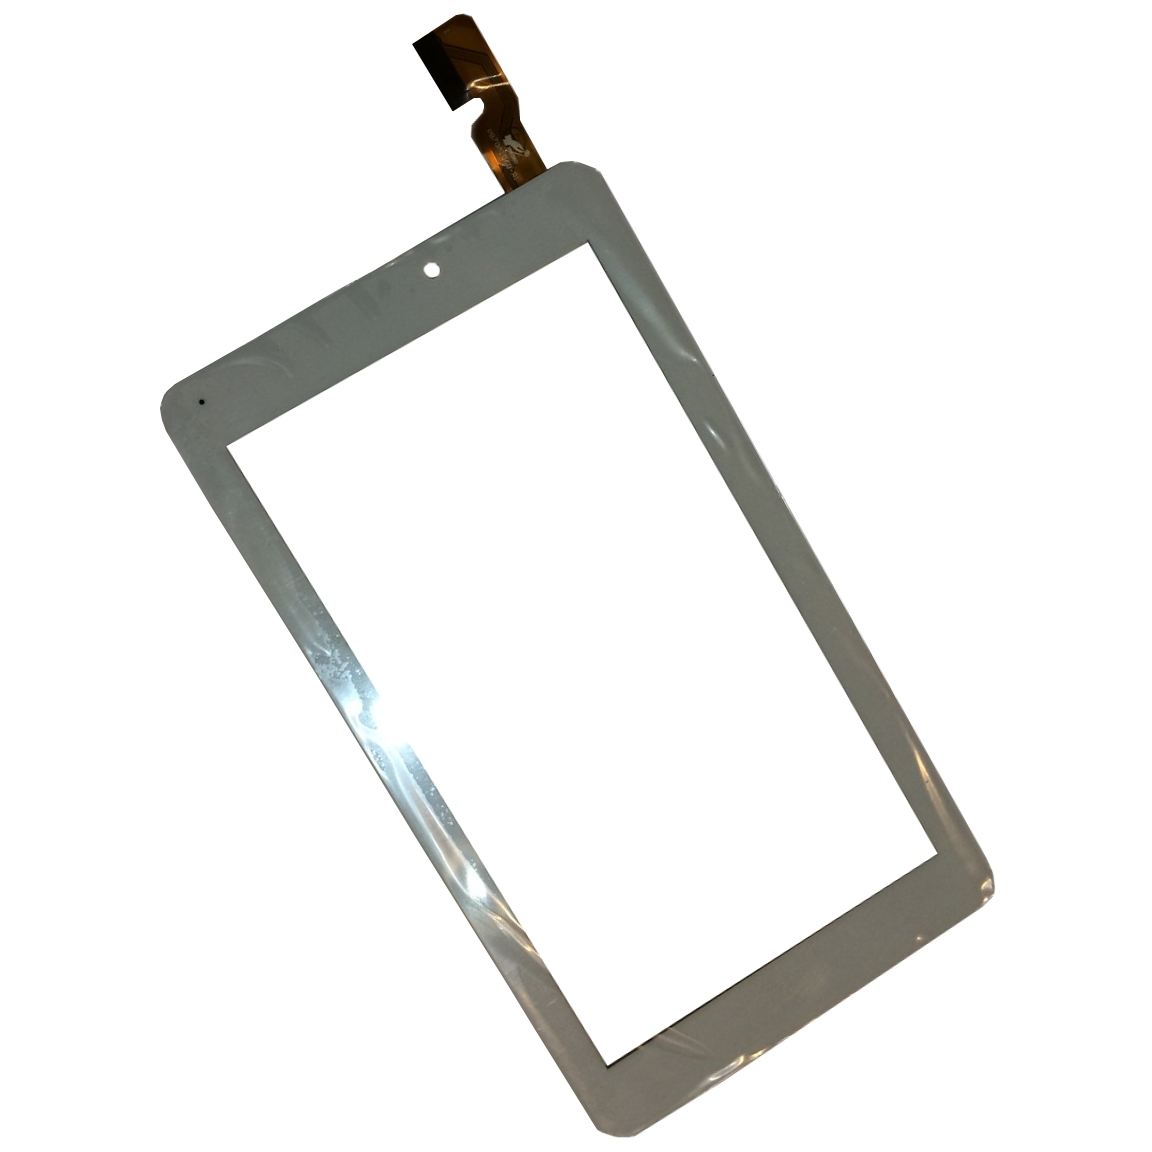 Touchscreen Digitizer eBoda Revo R70 Geam Sticla Tableta imagine powerlaptop.ro 2021